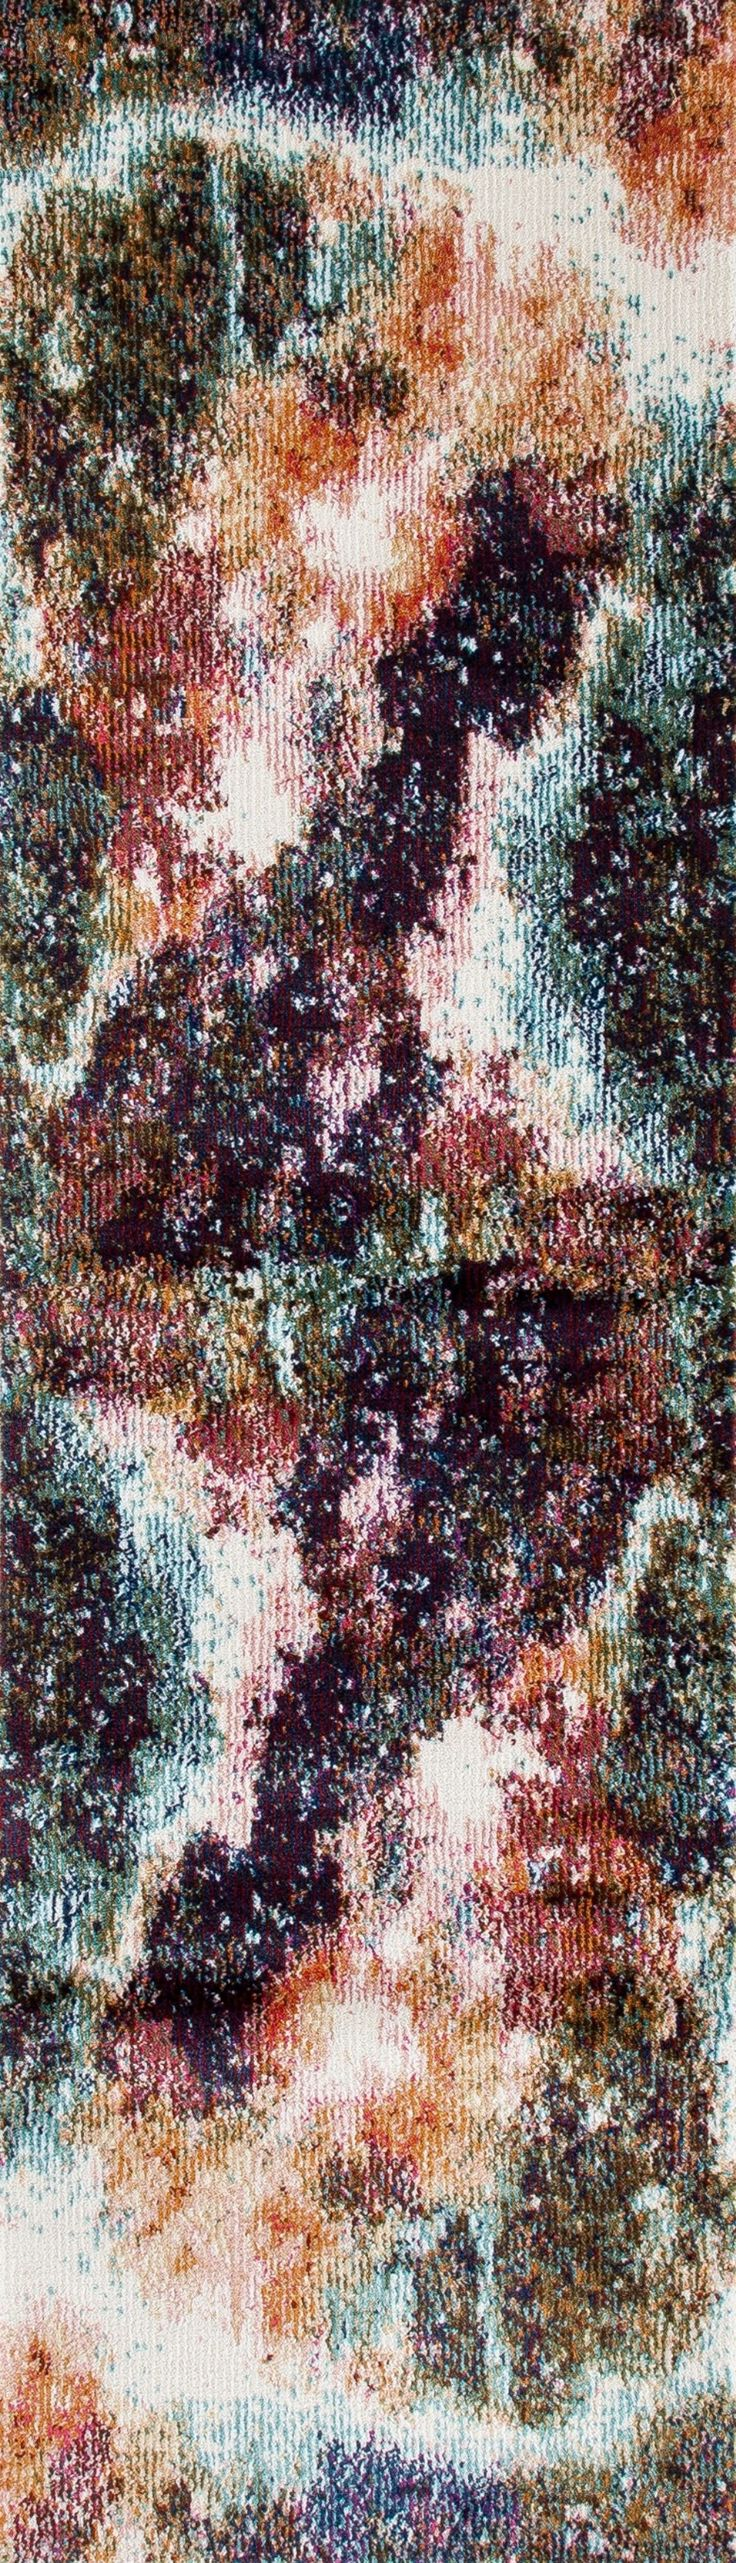 World Rug Gallery Loft Distressed Abstract 22704 Multi 2' X 7'2 Indoor Area Rug Runner